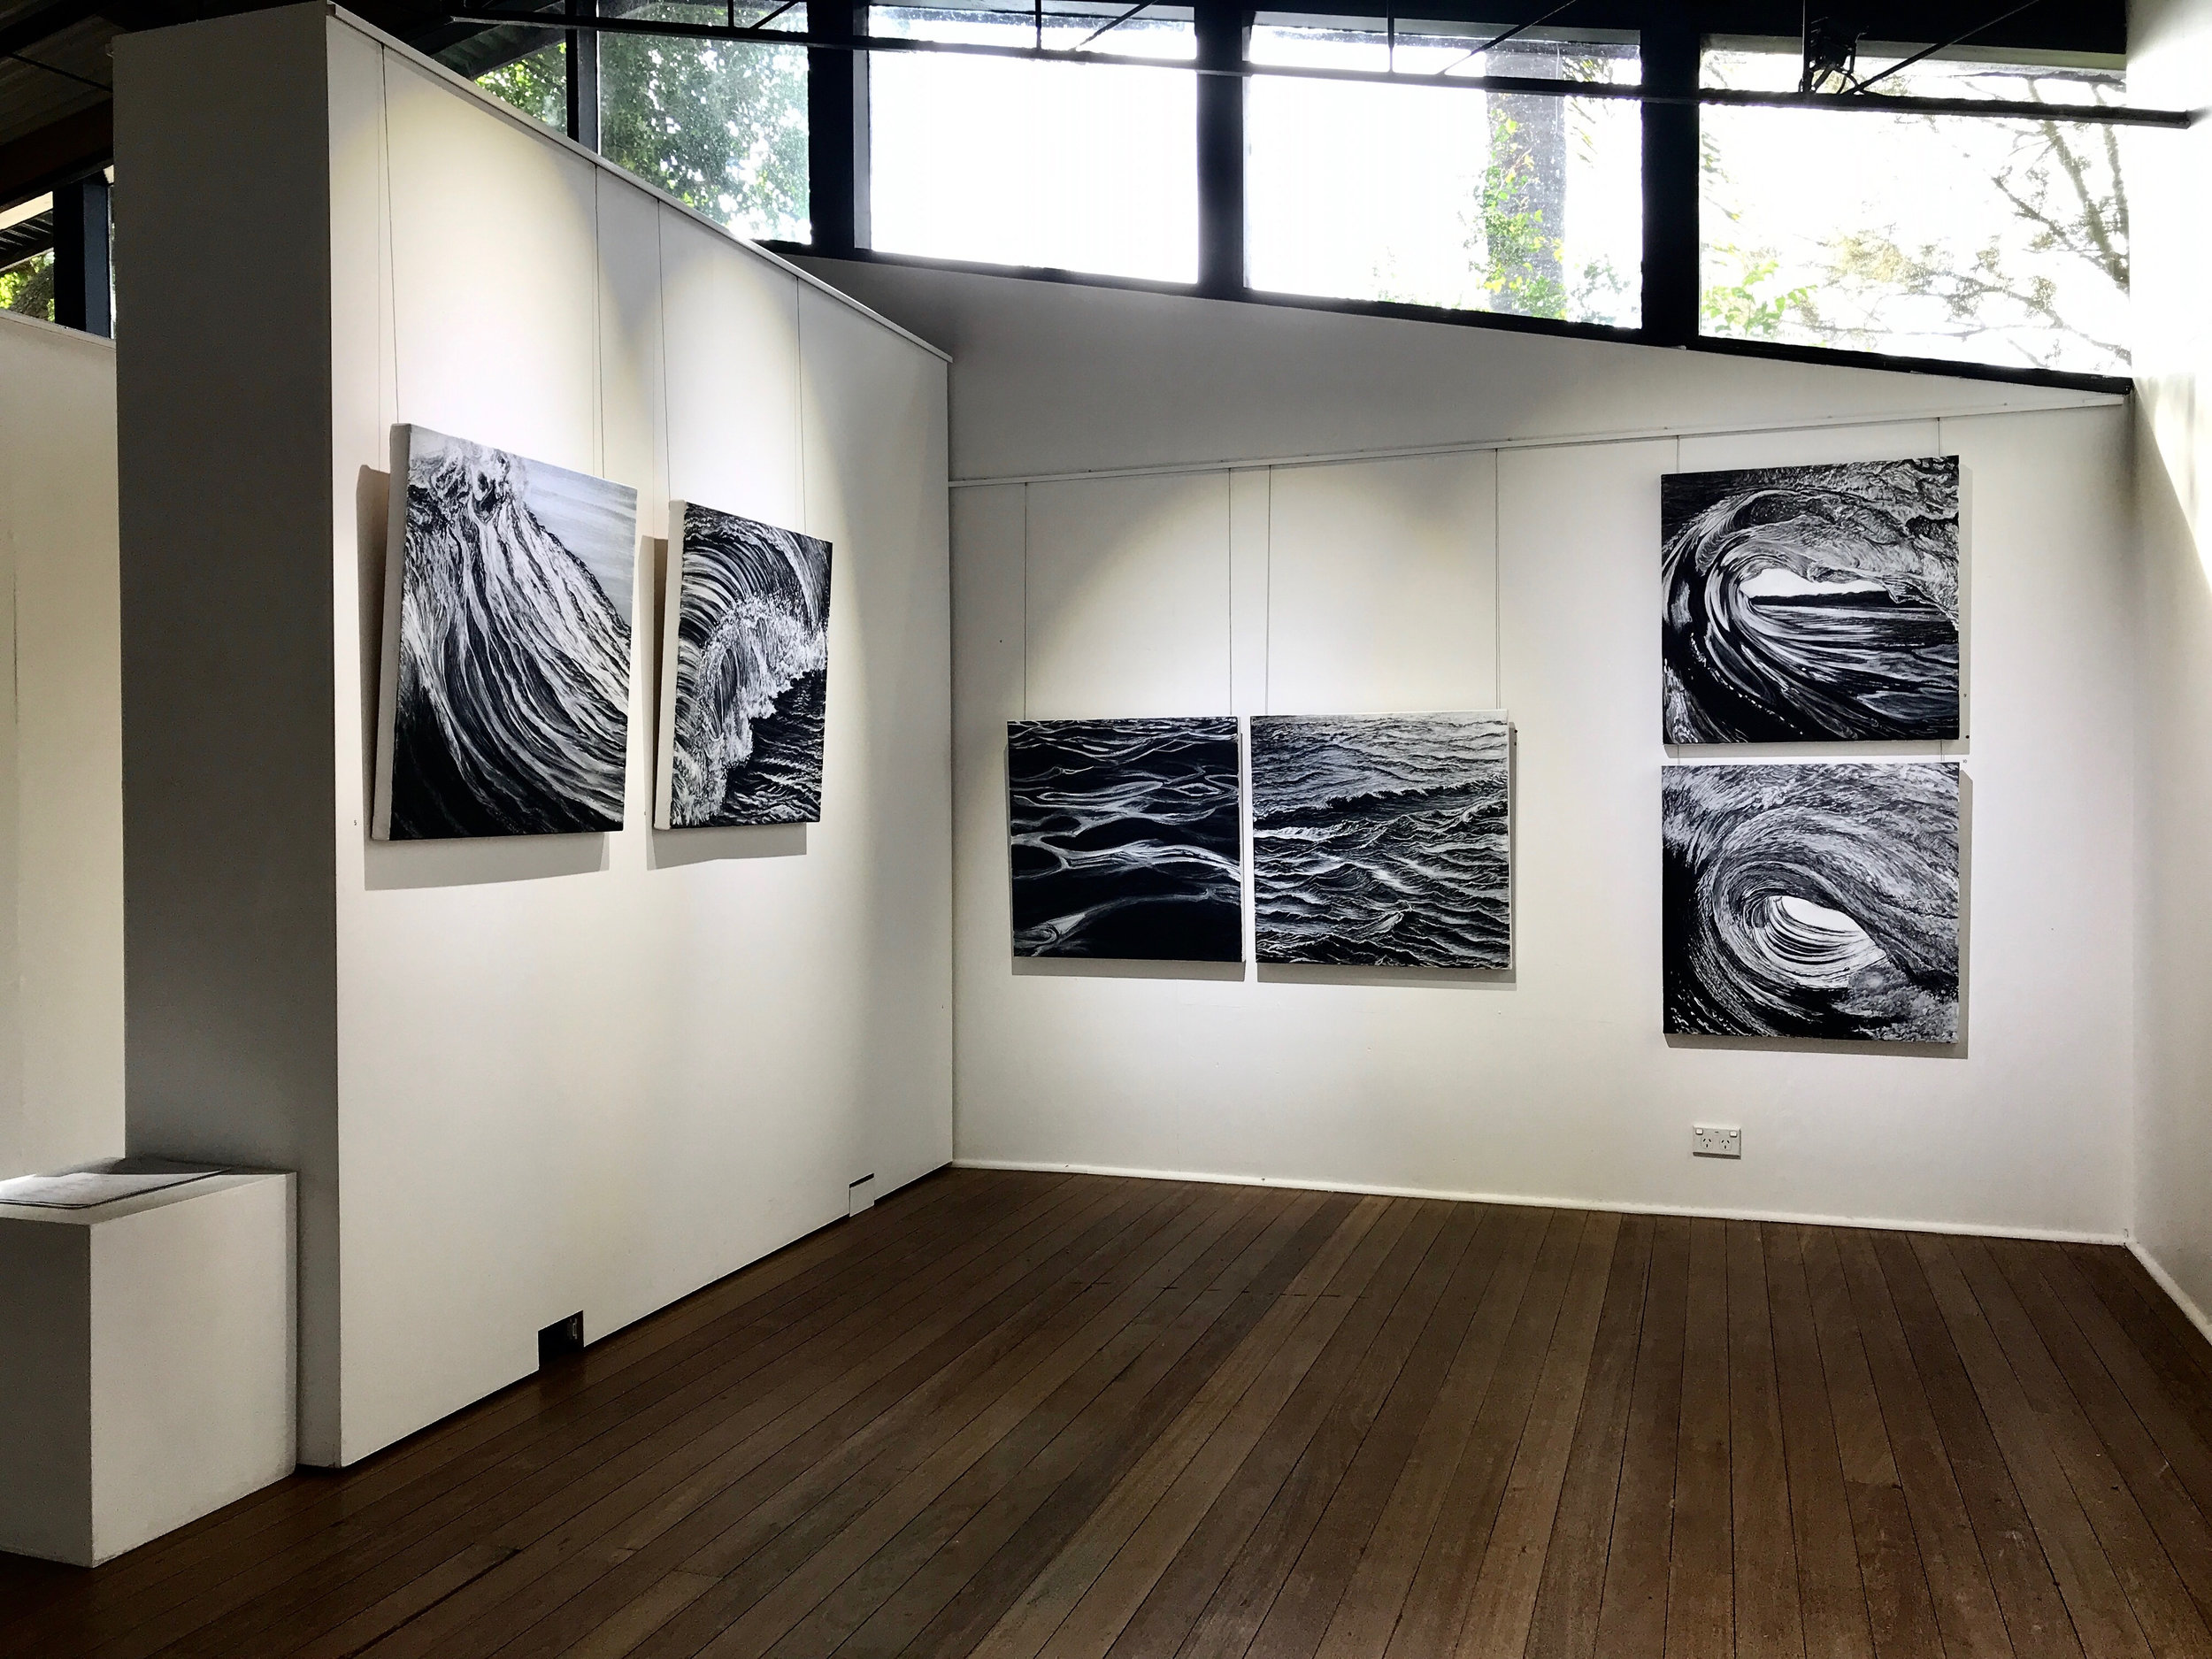 Exhibition view of Invisible Bridges at Creative Space, 2018, curated by Cassia Bundock